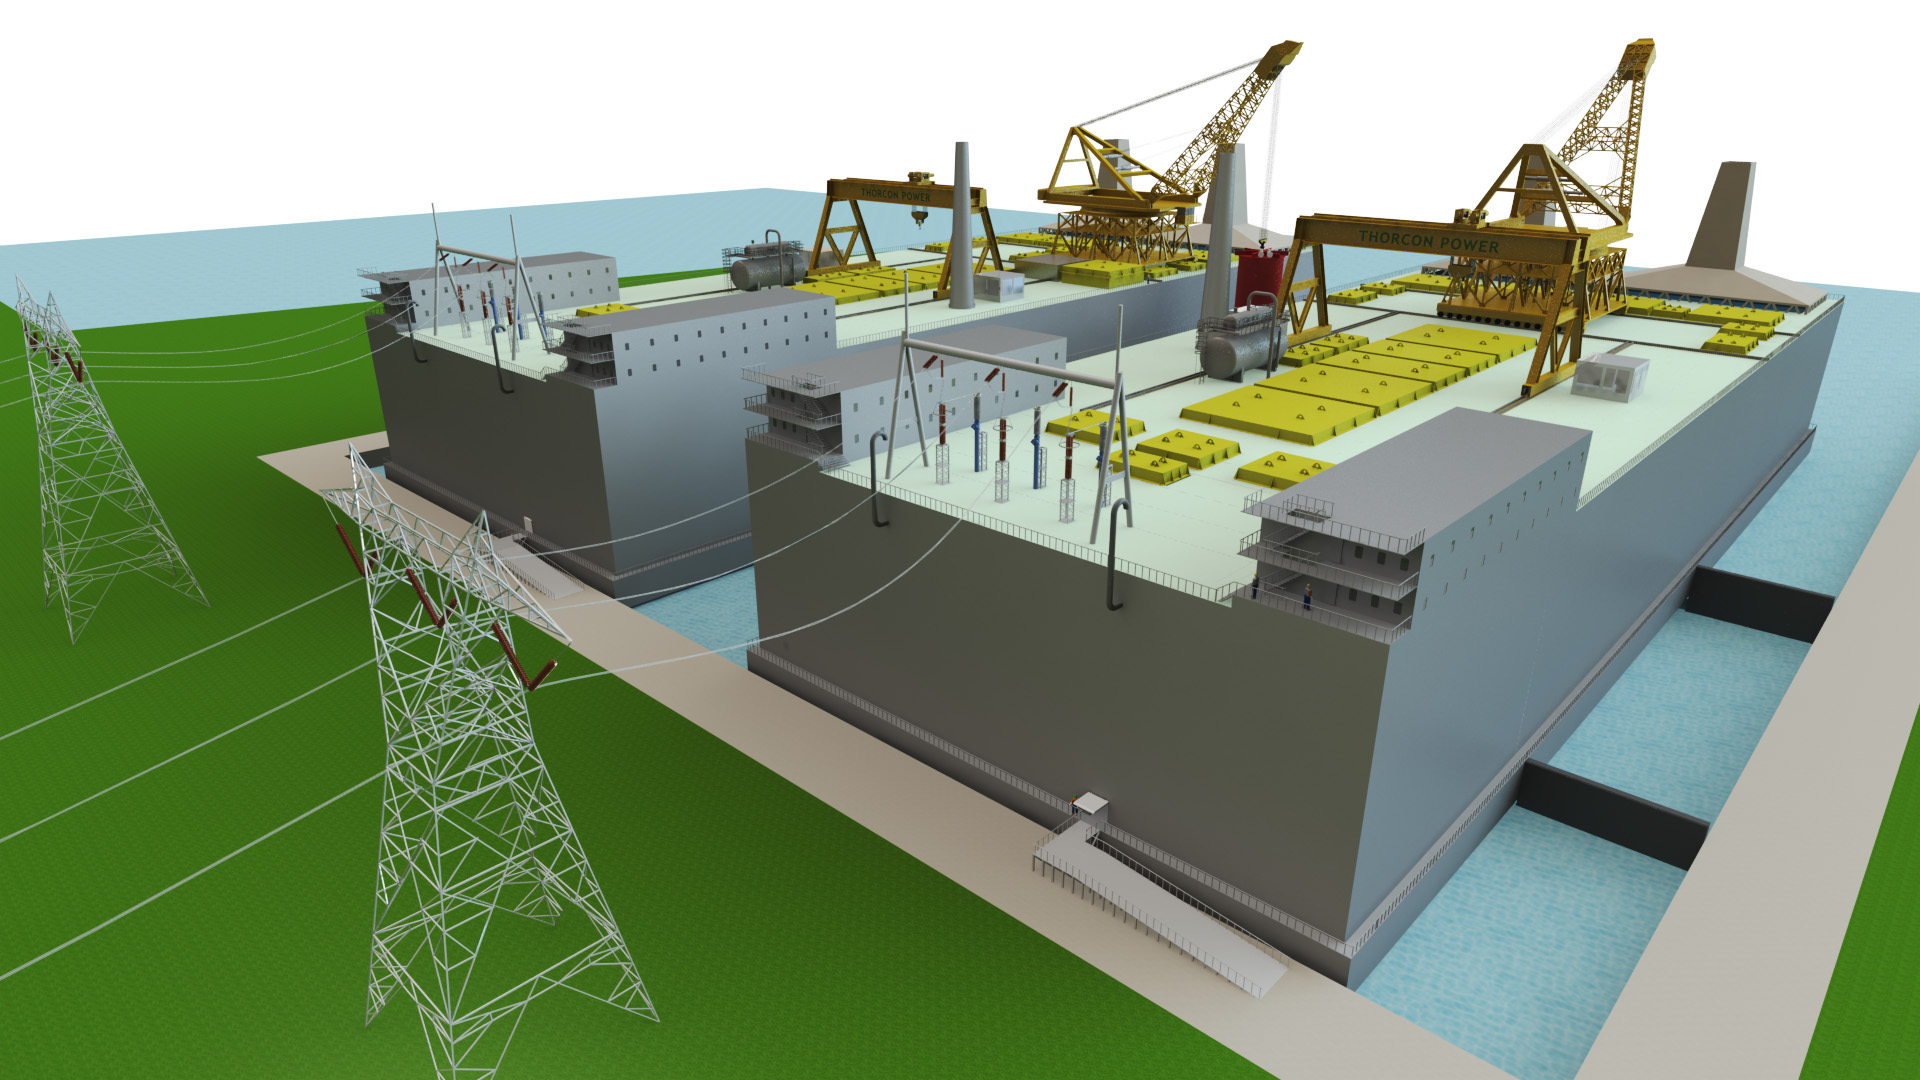 two 500 mw thorcon shoreside power plants supplying the power grid